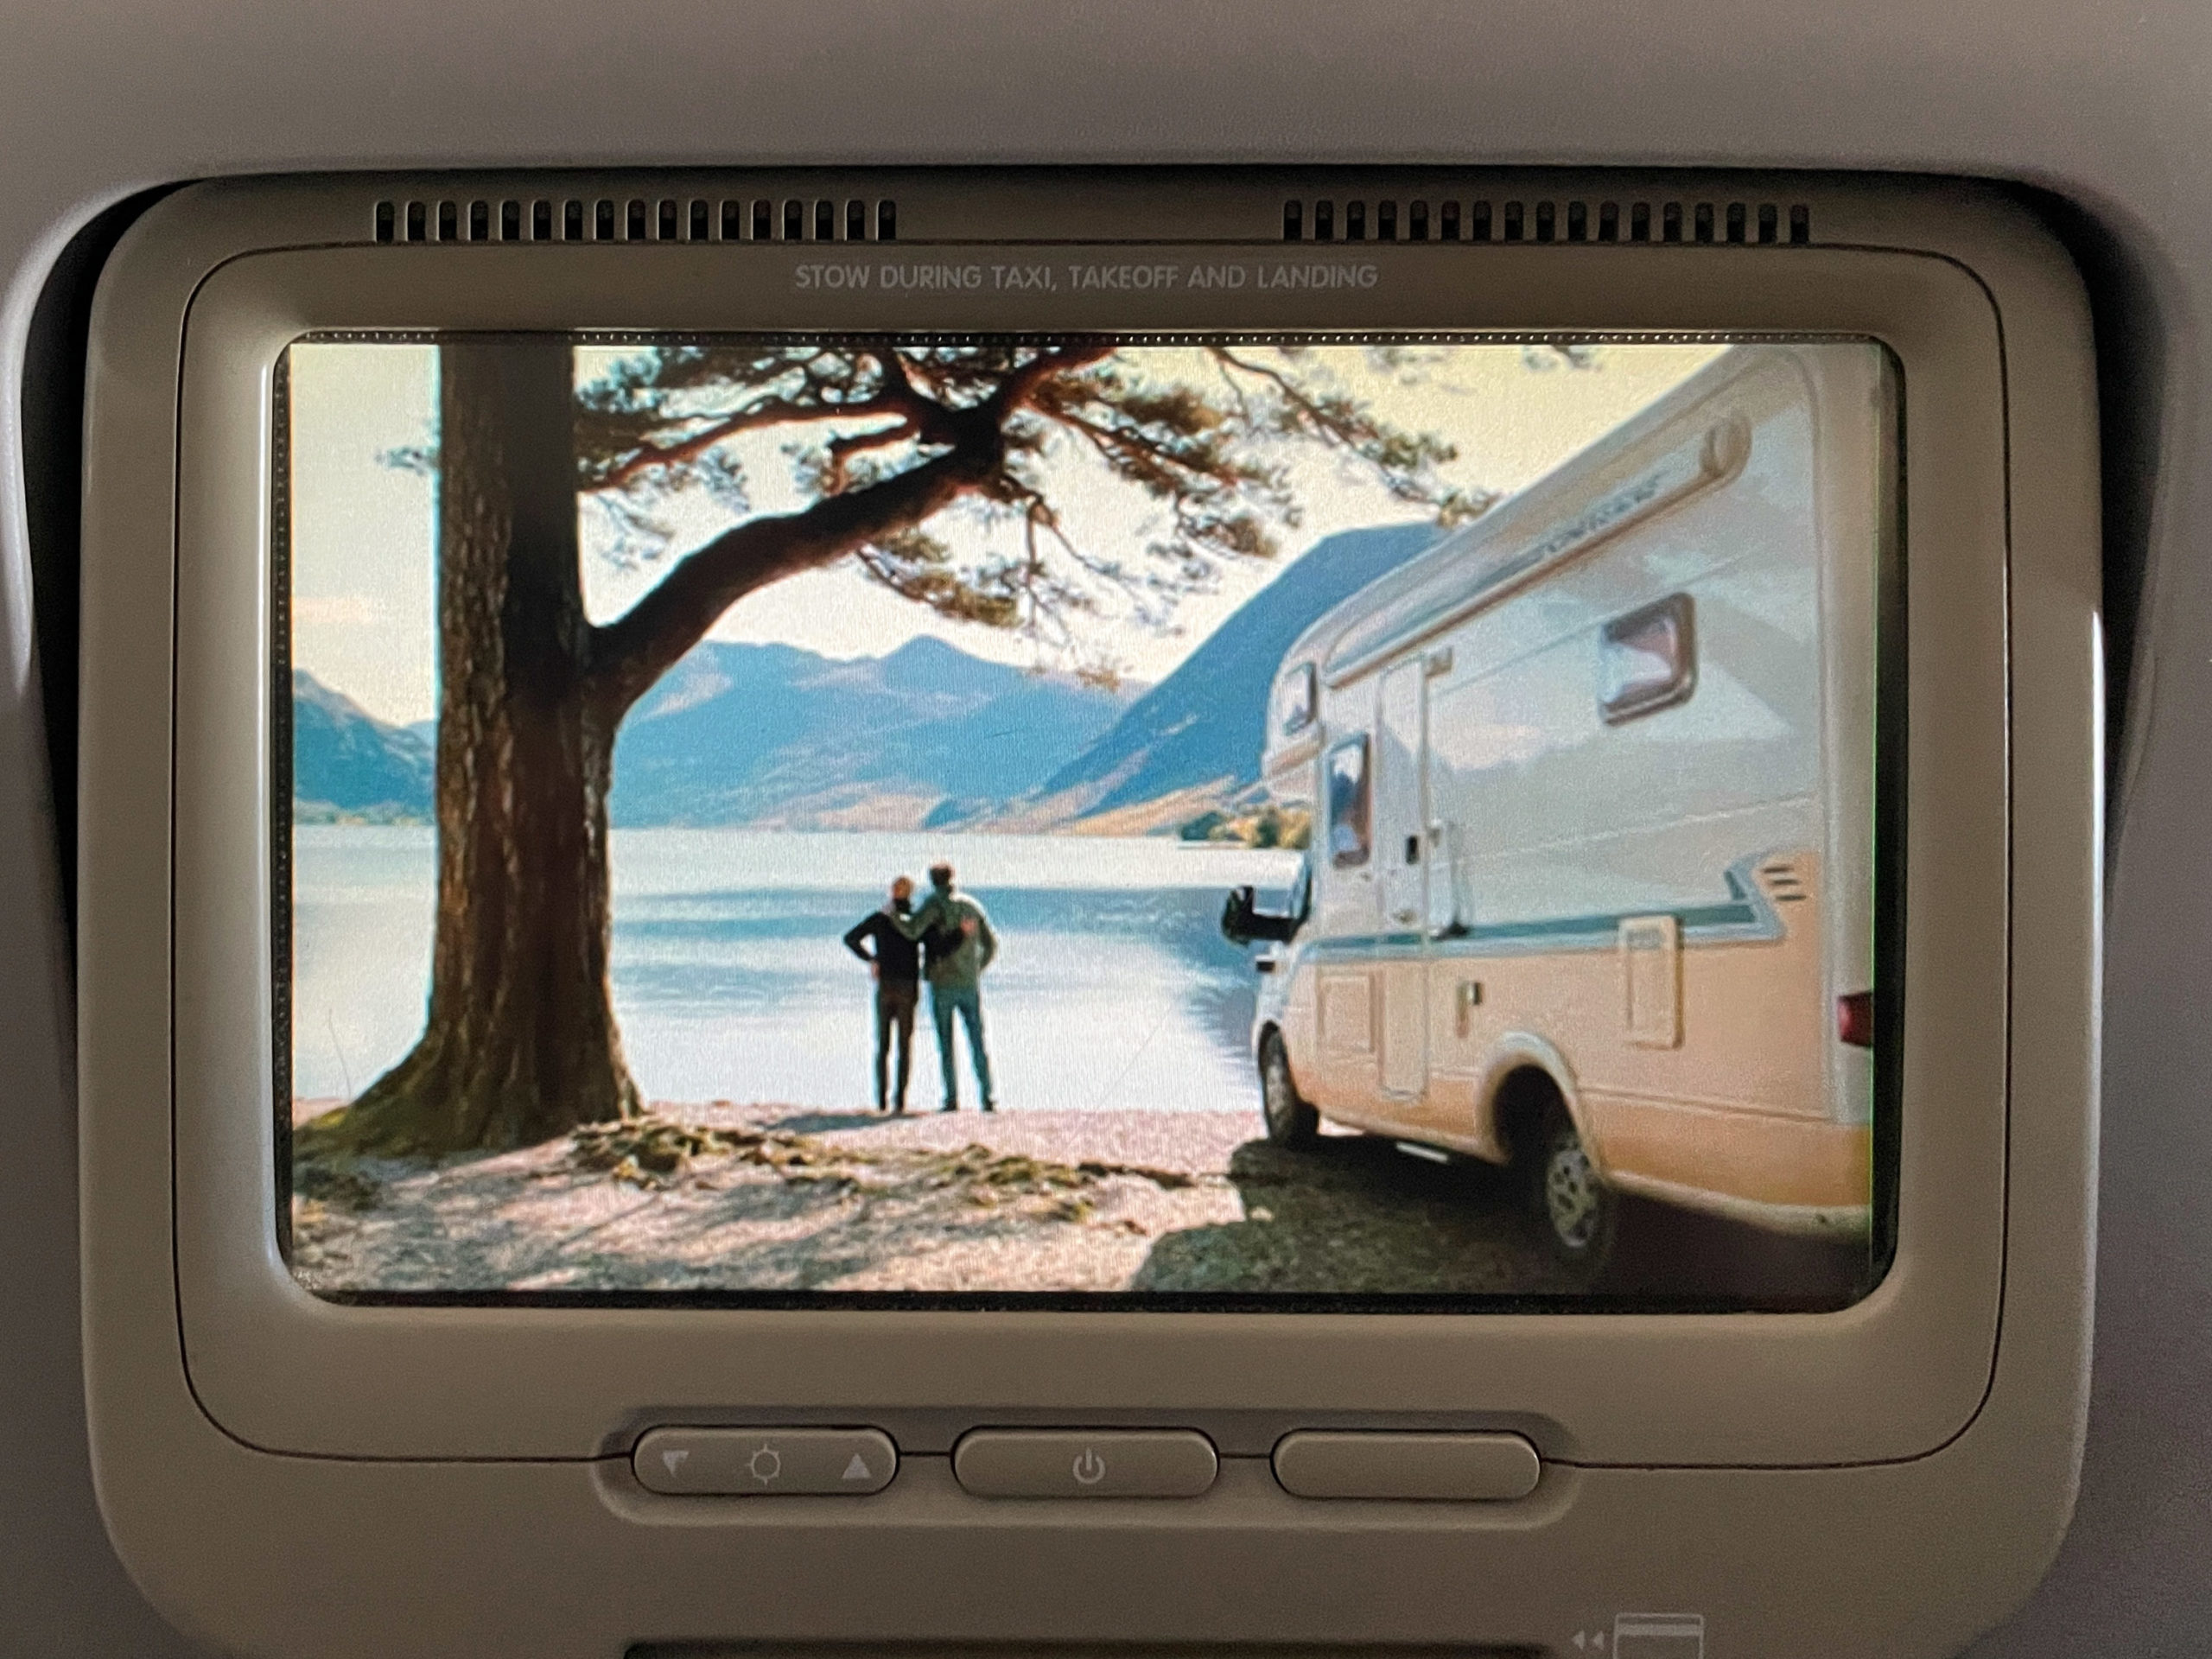 Photograph of a seatback video screen on a flight. The scene is of two men with their arms around another at the edge of a lake with an RV in the foreground